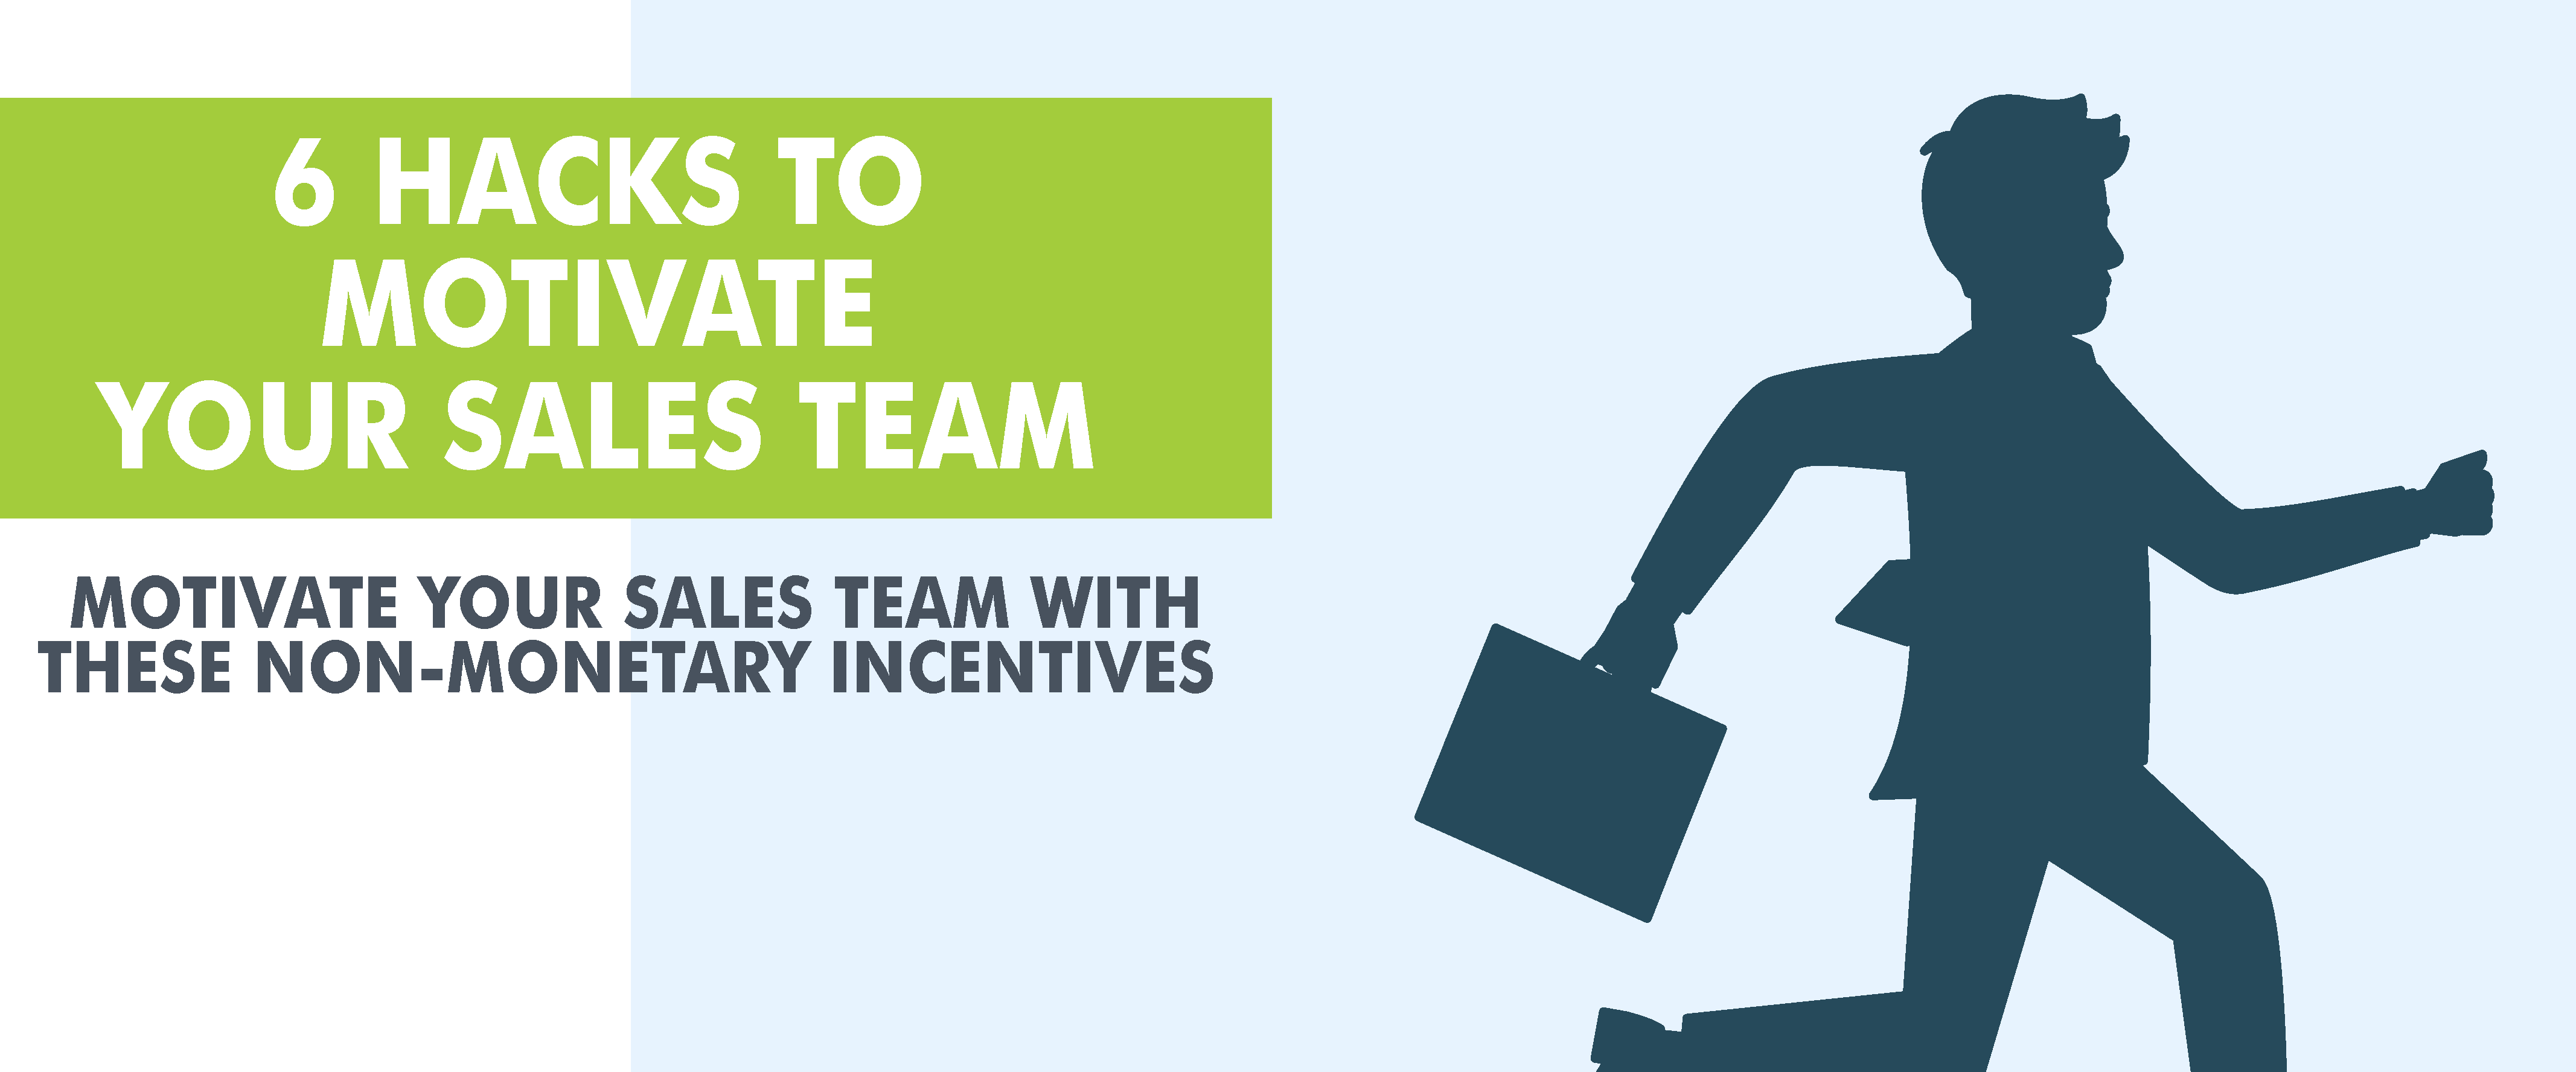 Motivate Your Sales Team with These Non-Monetary Incentives